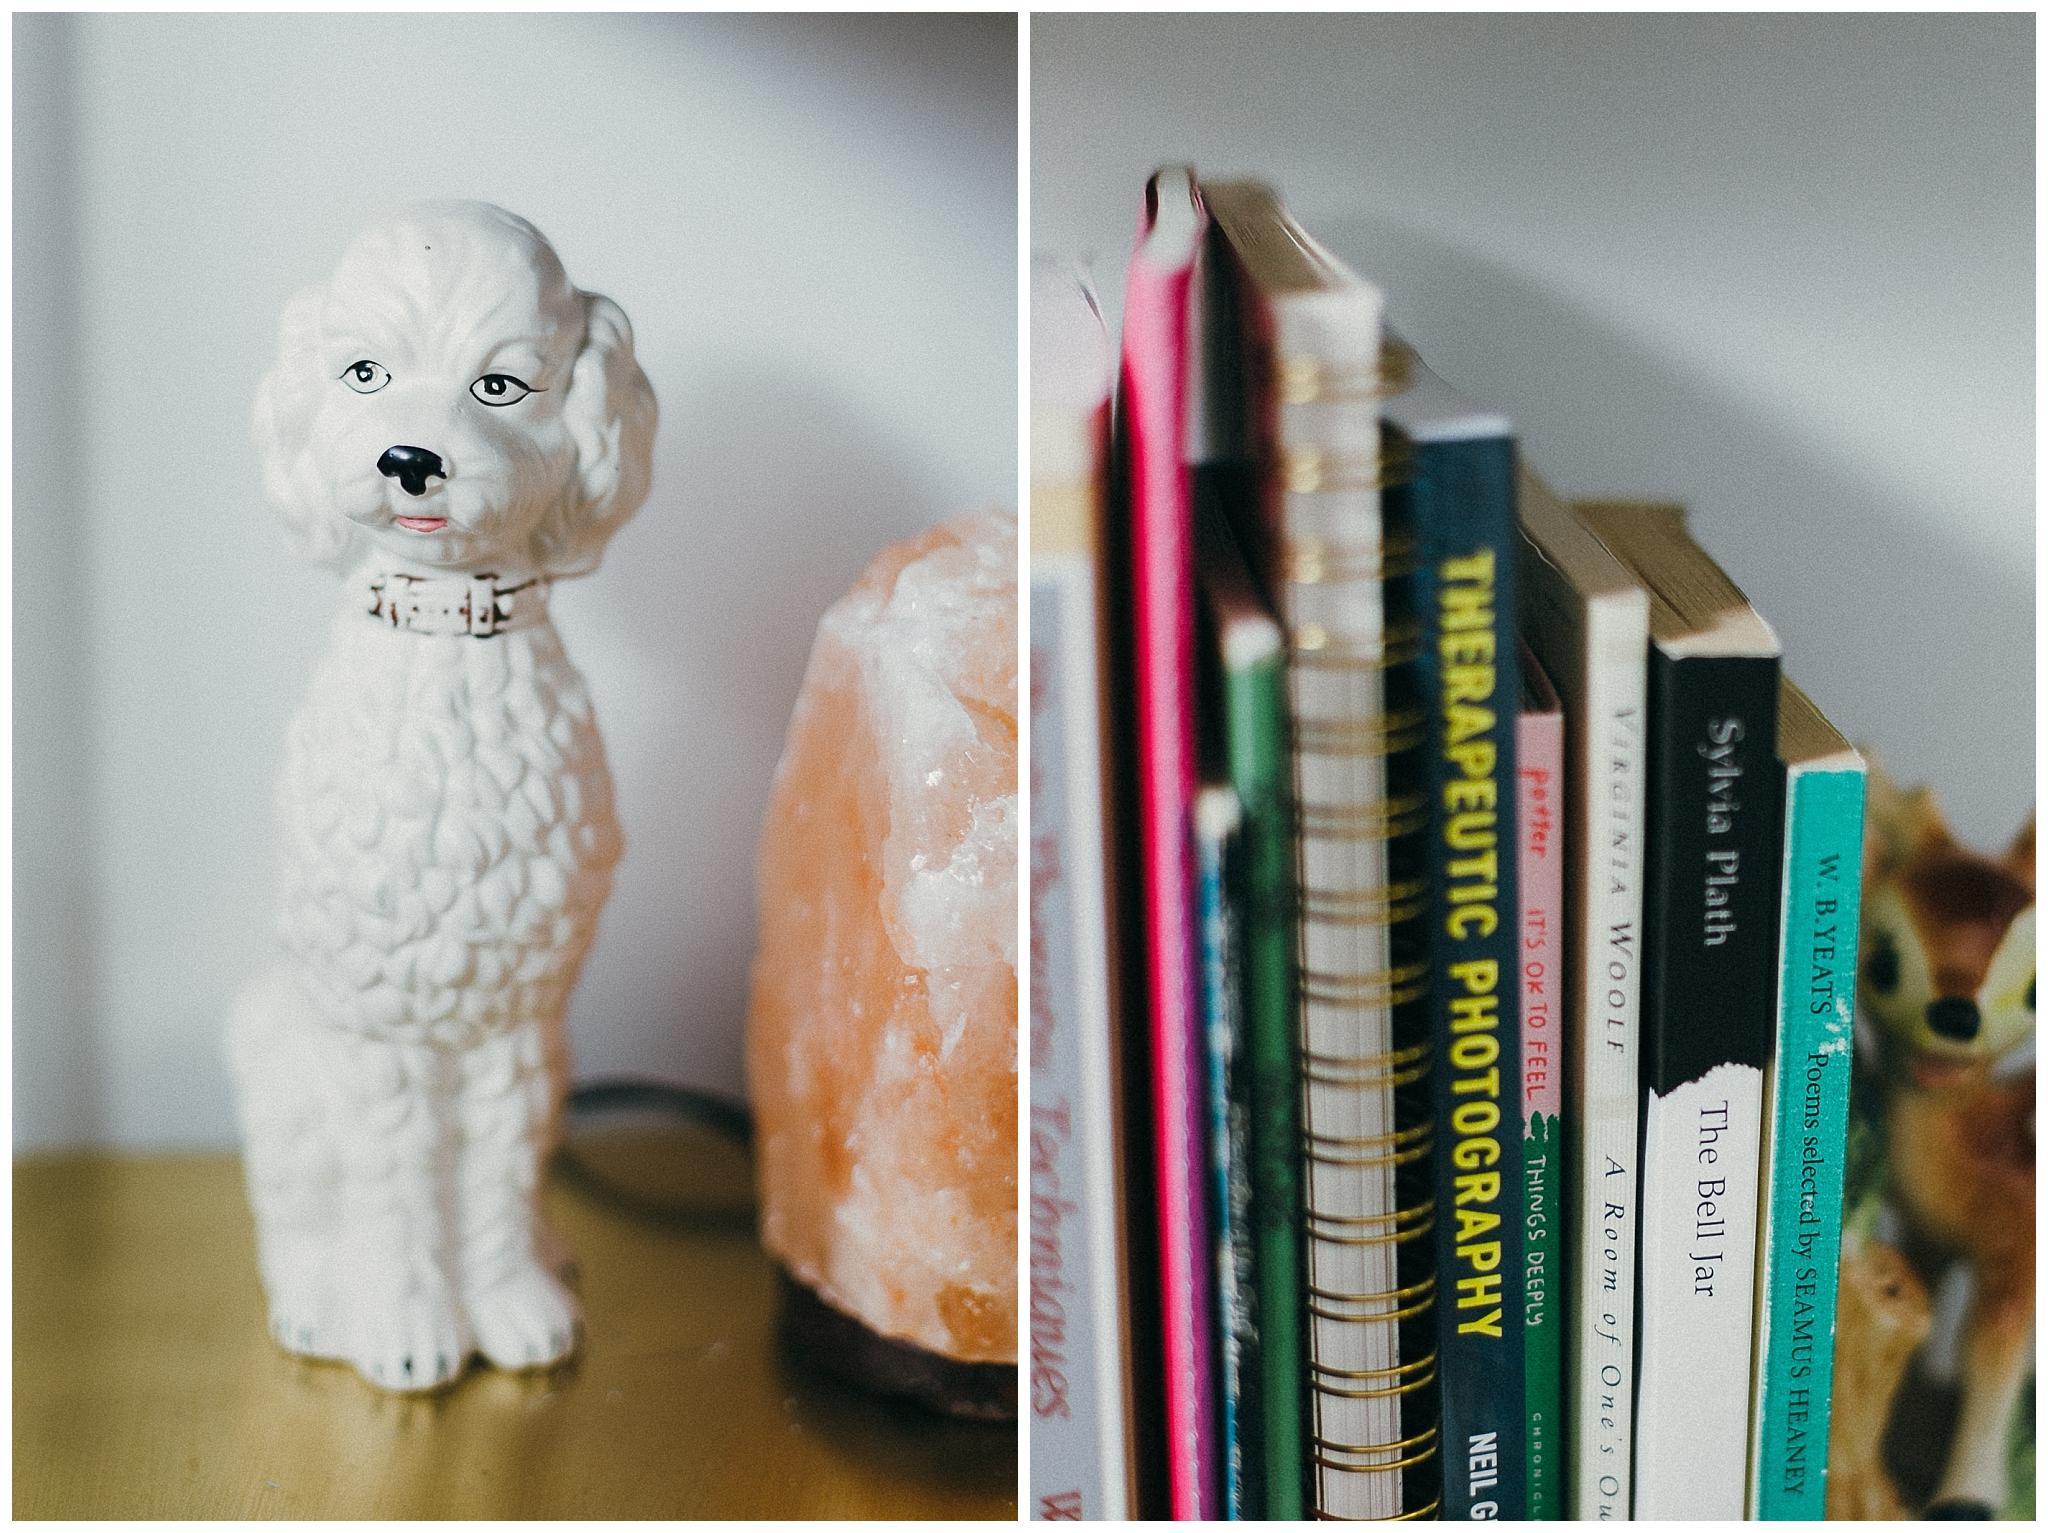 This poodle was from Value Village where someone donated their entire poodle collection. I went back like 3 times and finally I just had to take one home. I still haven't unpacked the majority of my books (we don't have bookshelves anymore, and I feel super scandalous sharing that with you) - so I just have a few old standby's sitting out here and there until I figure things out.